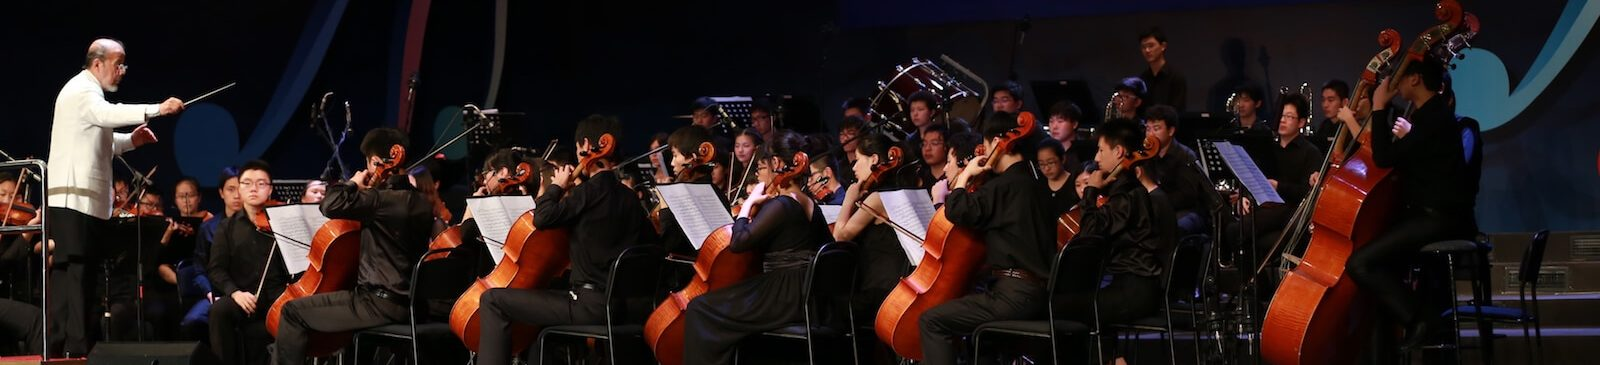 International Festival & Competition of Orchestras